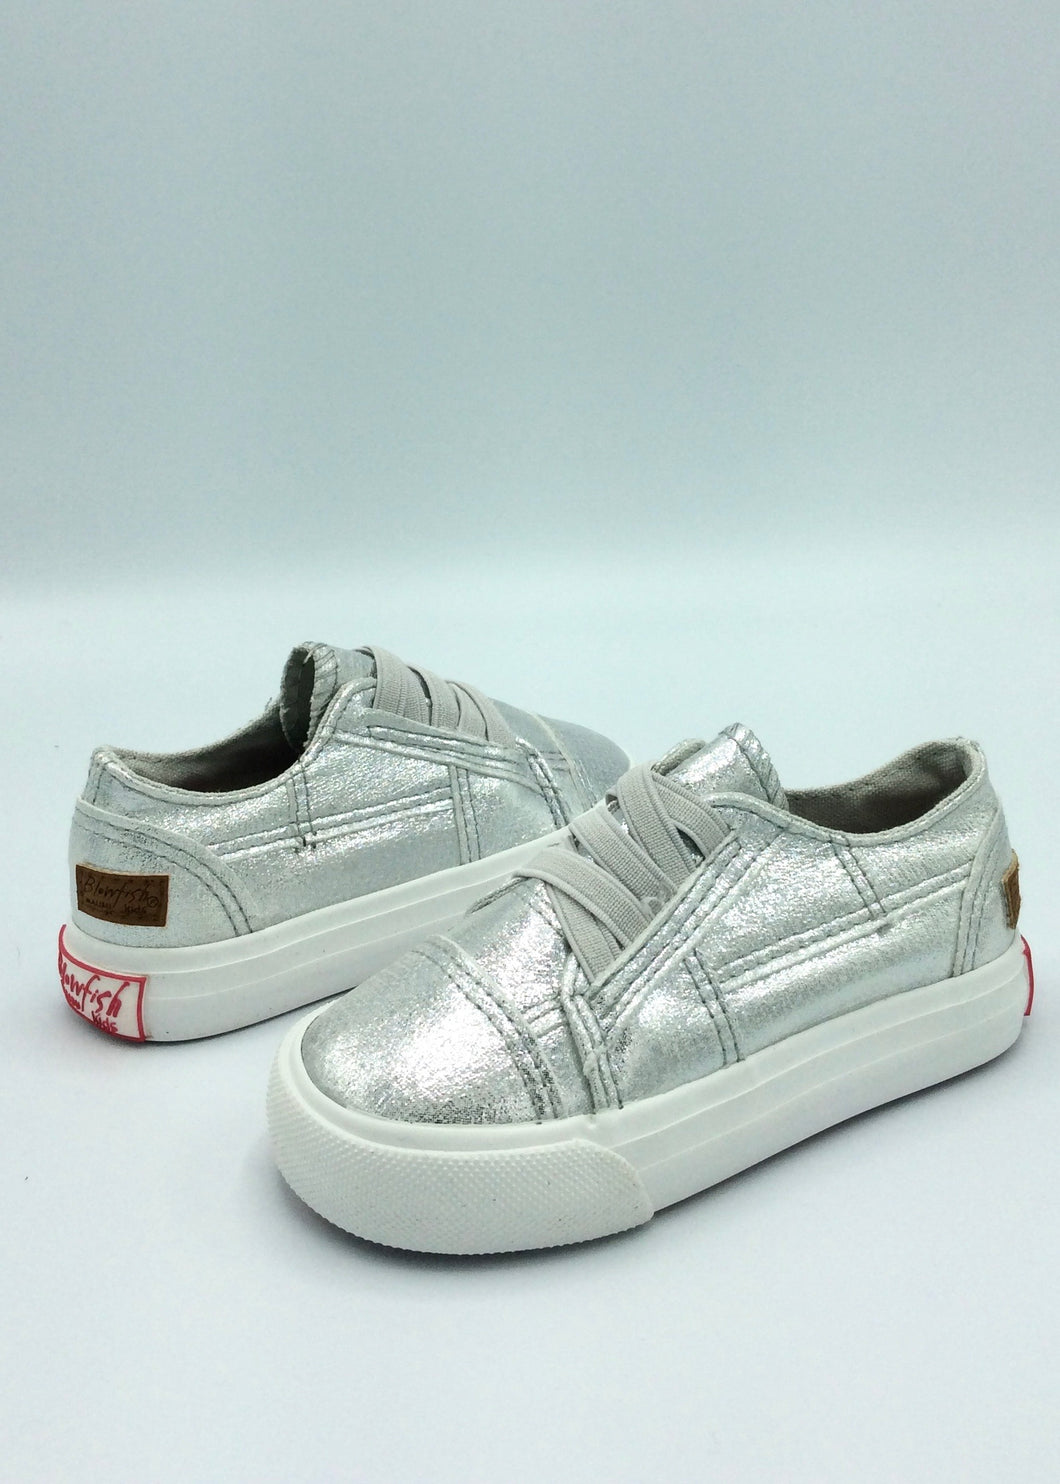 girls silver sneakers